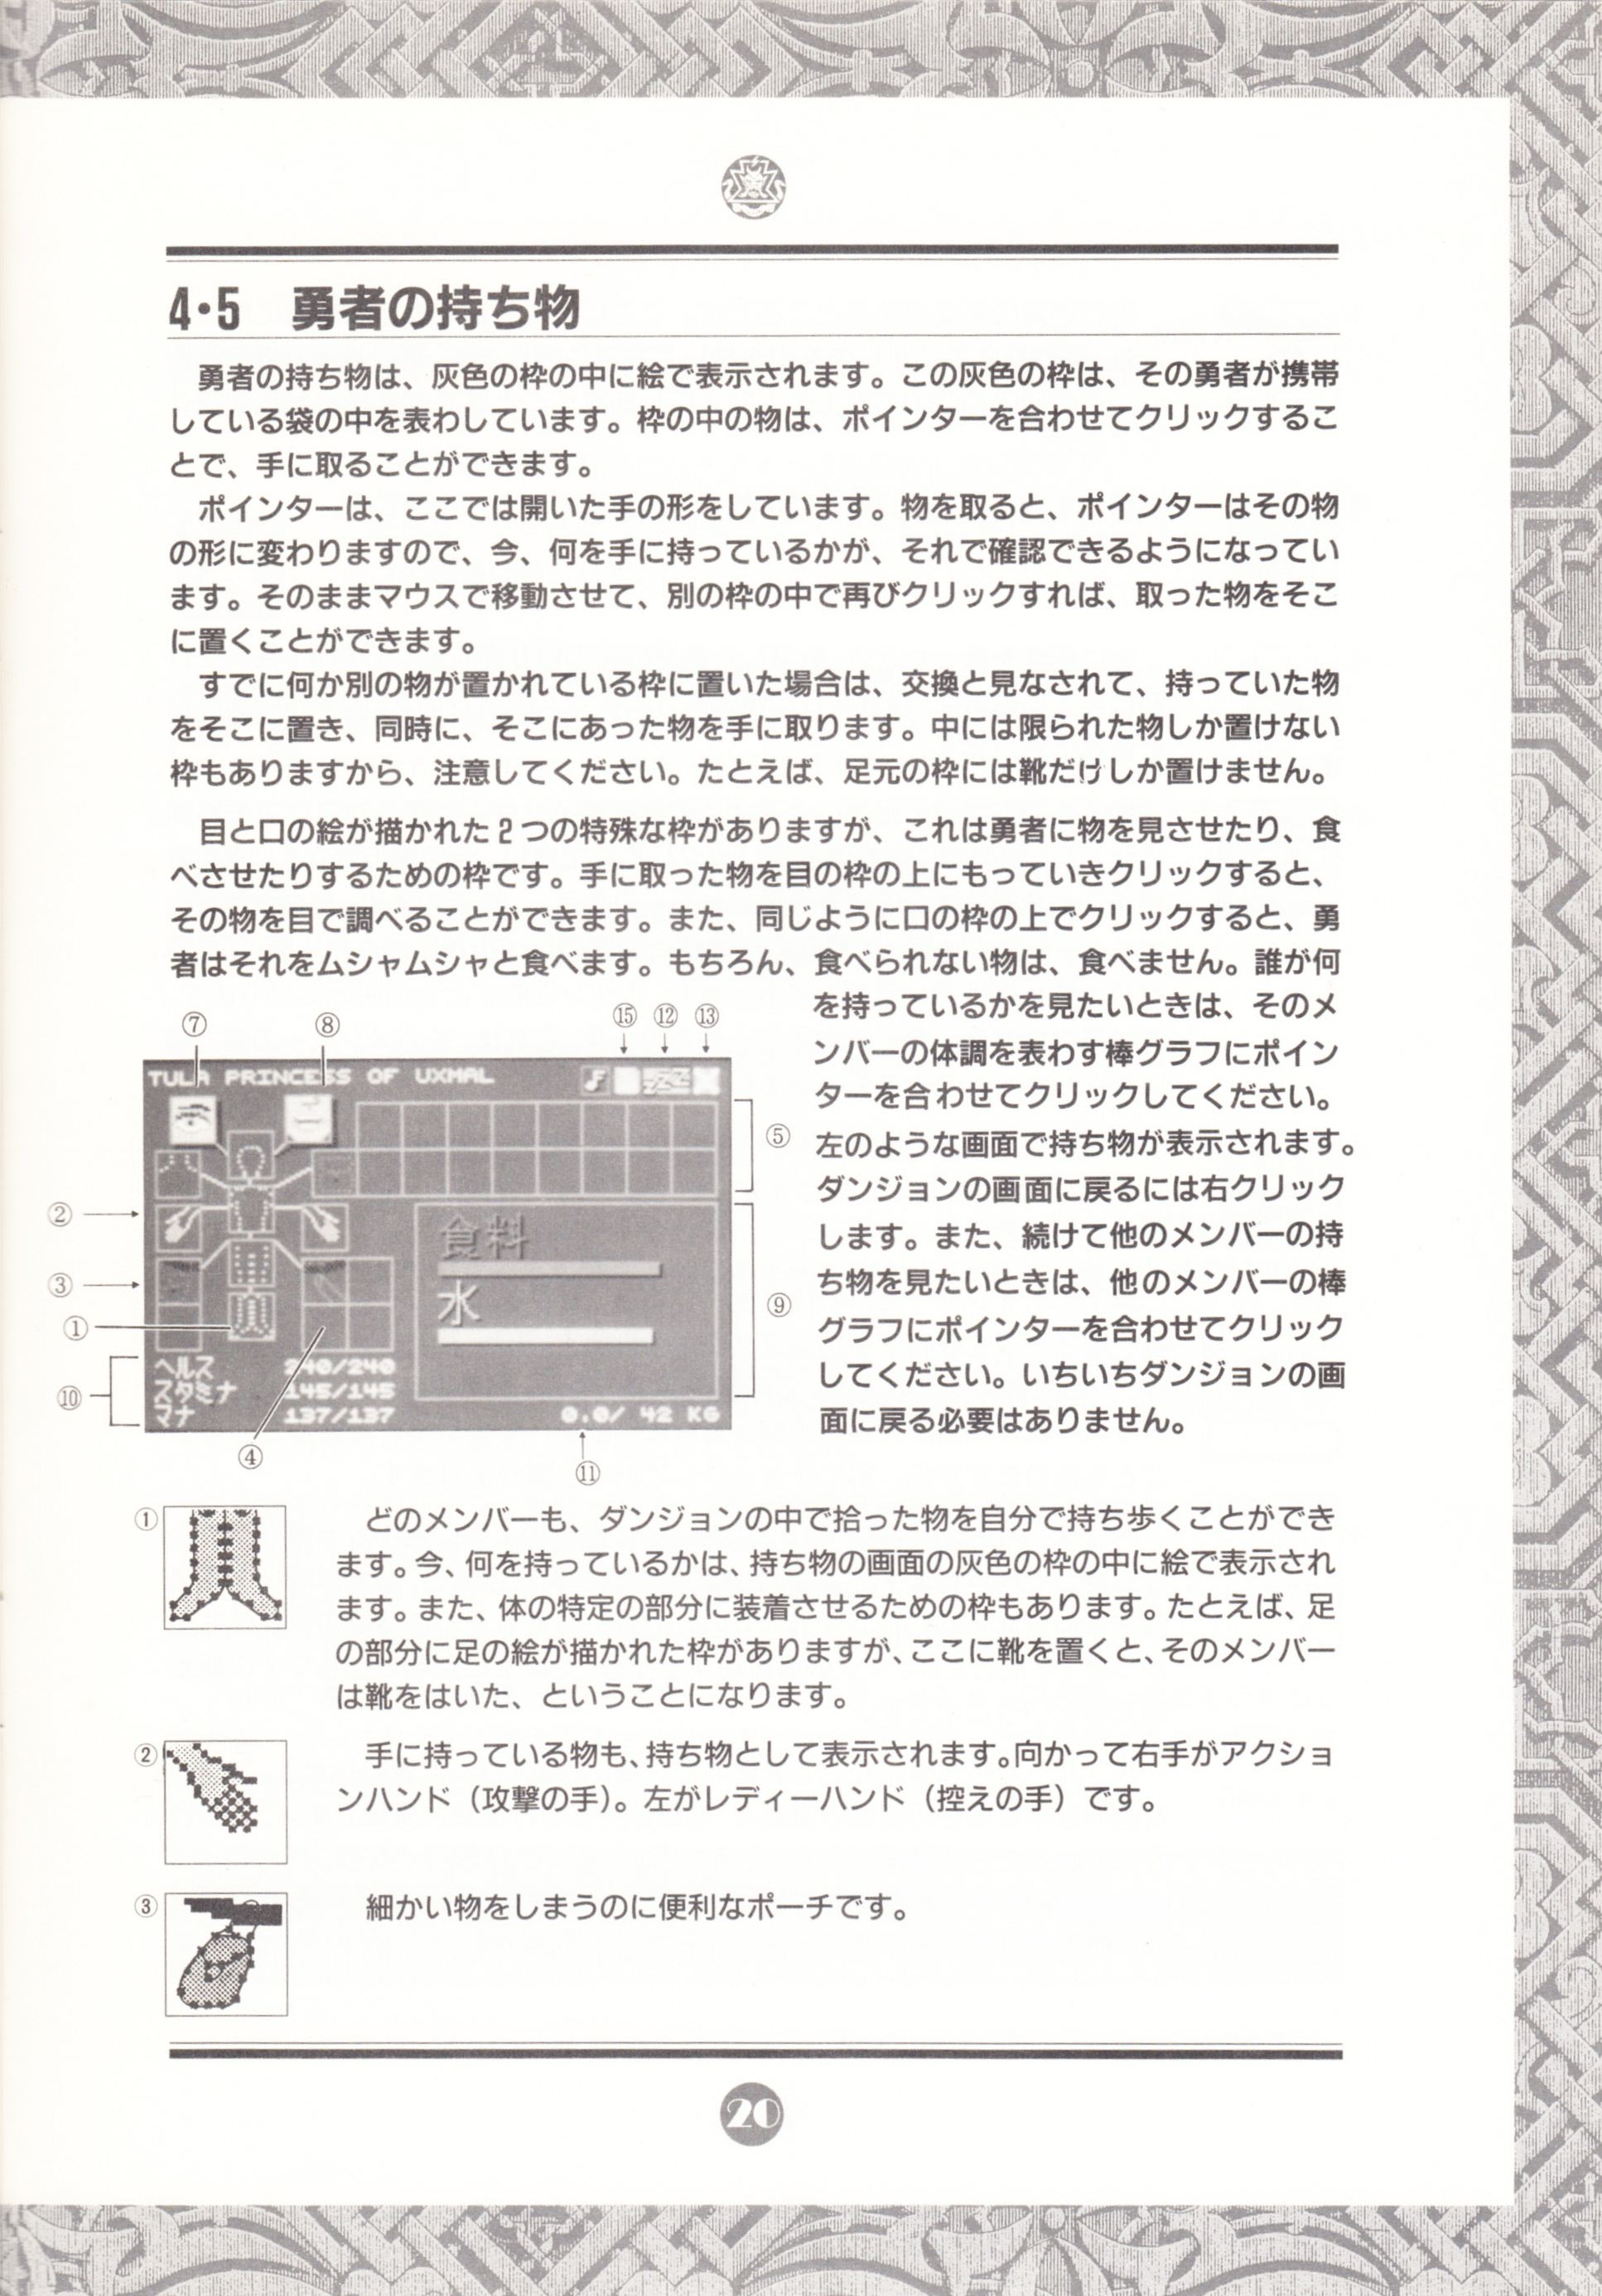 Game - Chaos Strikes Back - JP - FM Towns - An Operation Manual - Page 023 - Scan